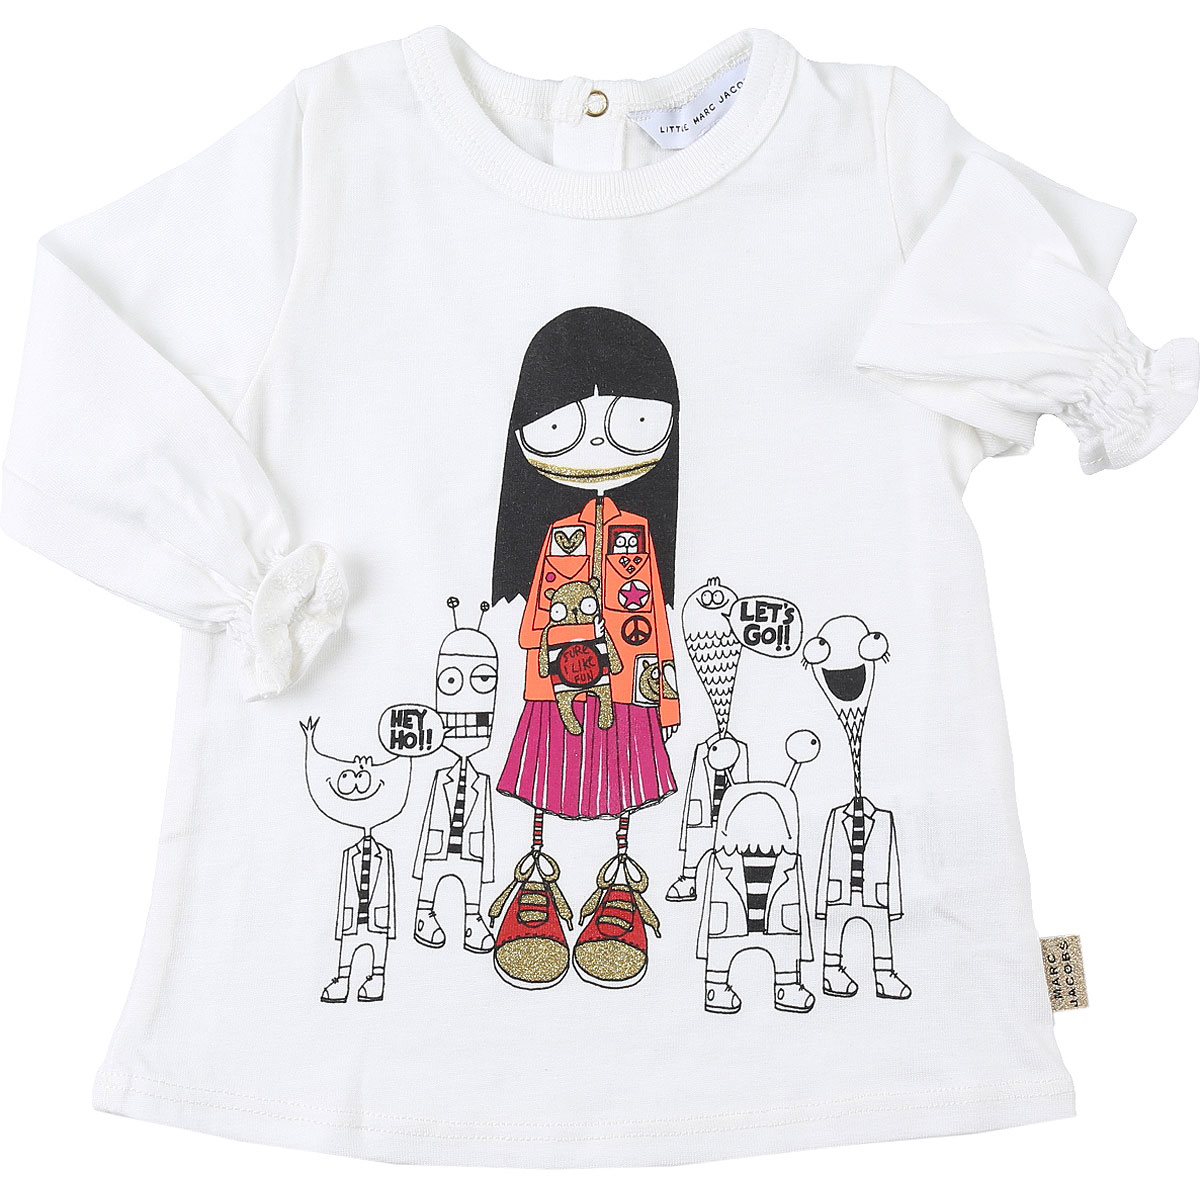 Marc Jacobs Baby T-Shirt for Girls On Sale, White, Cotton, 2019, 12M 18M 2Y 3Y 6M 9M